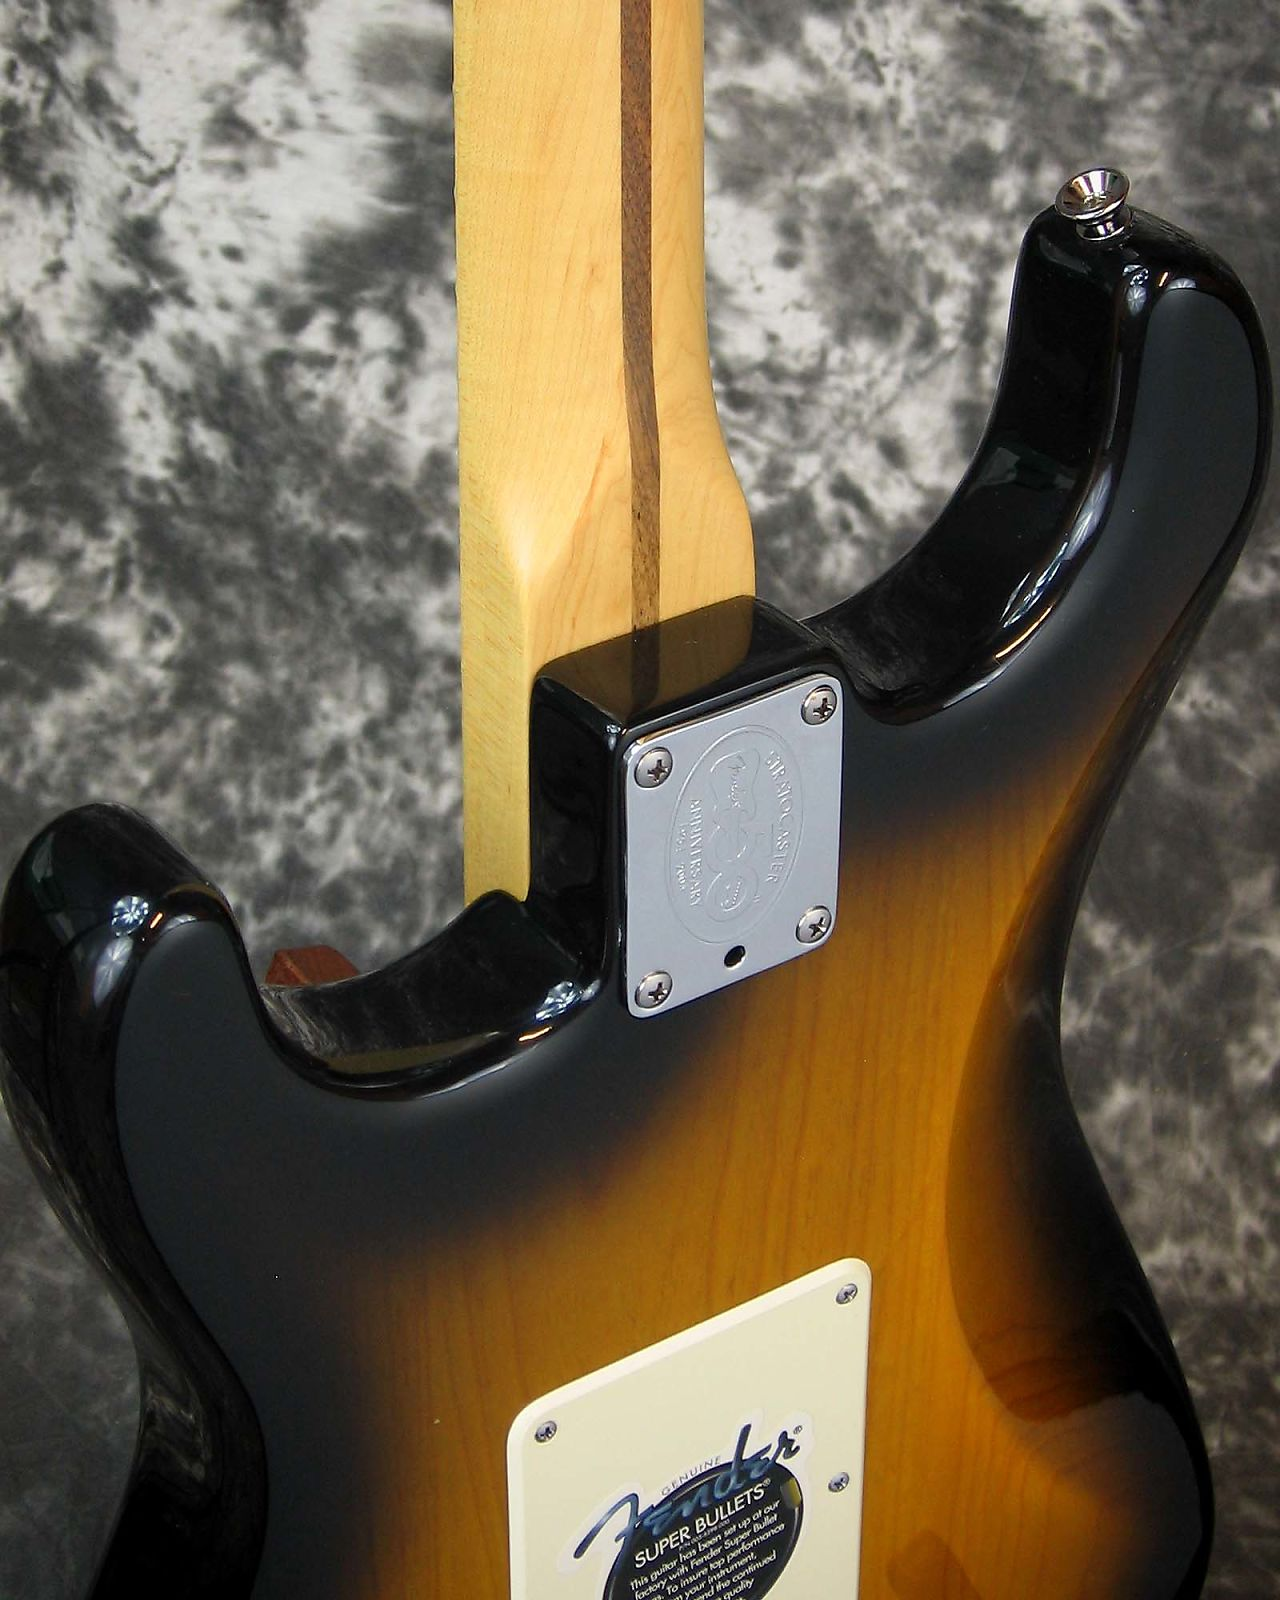 Exc. 2004 model Fender American Series 50th Anniversary Stratocaster - unplayed!